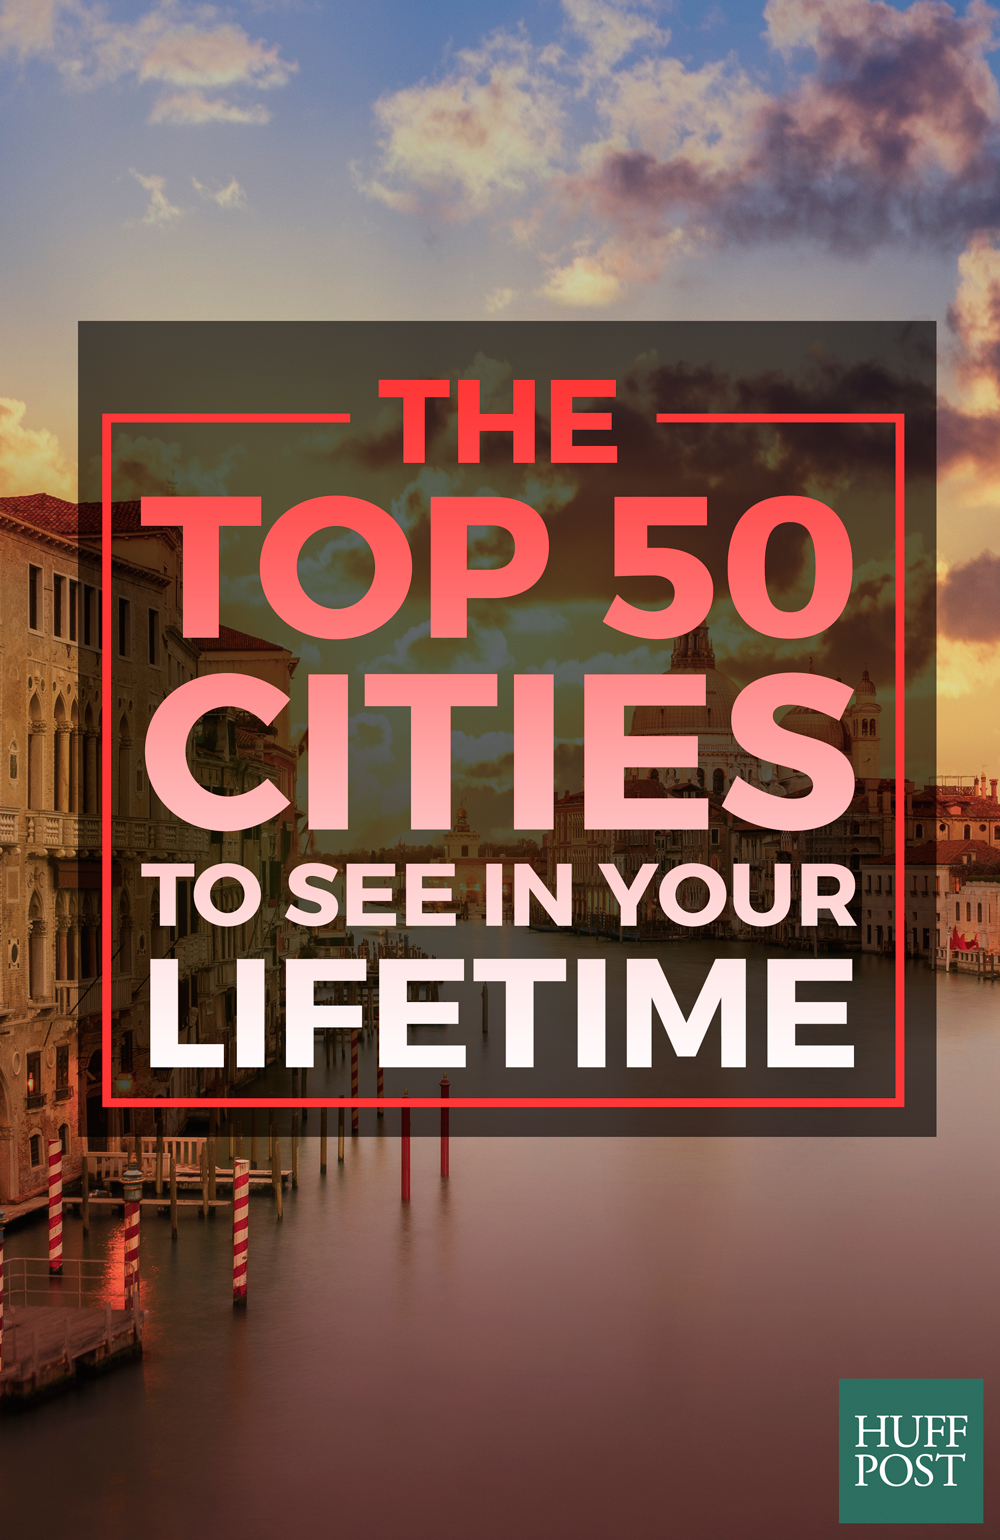 AD-Top-50-Cities-To-See-In-Your-Life-Time-00